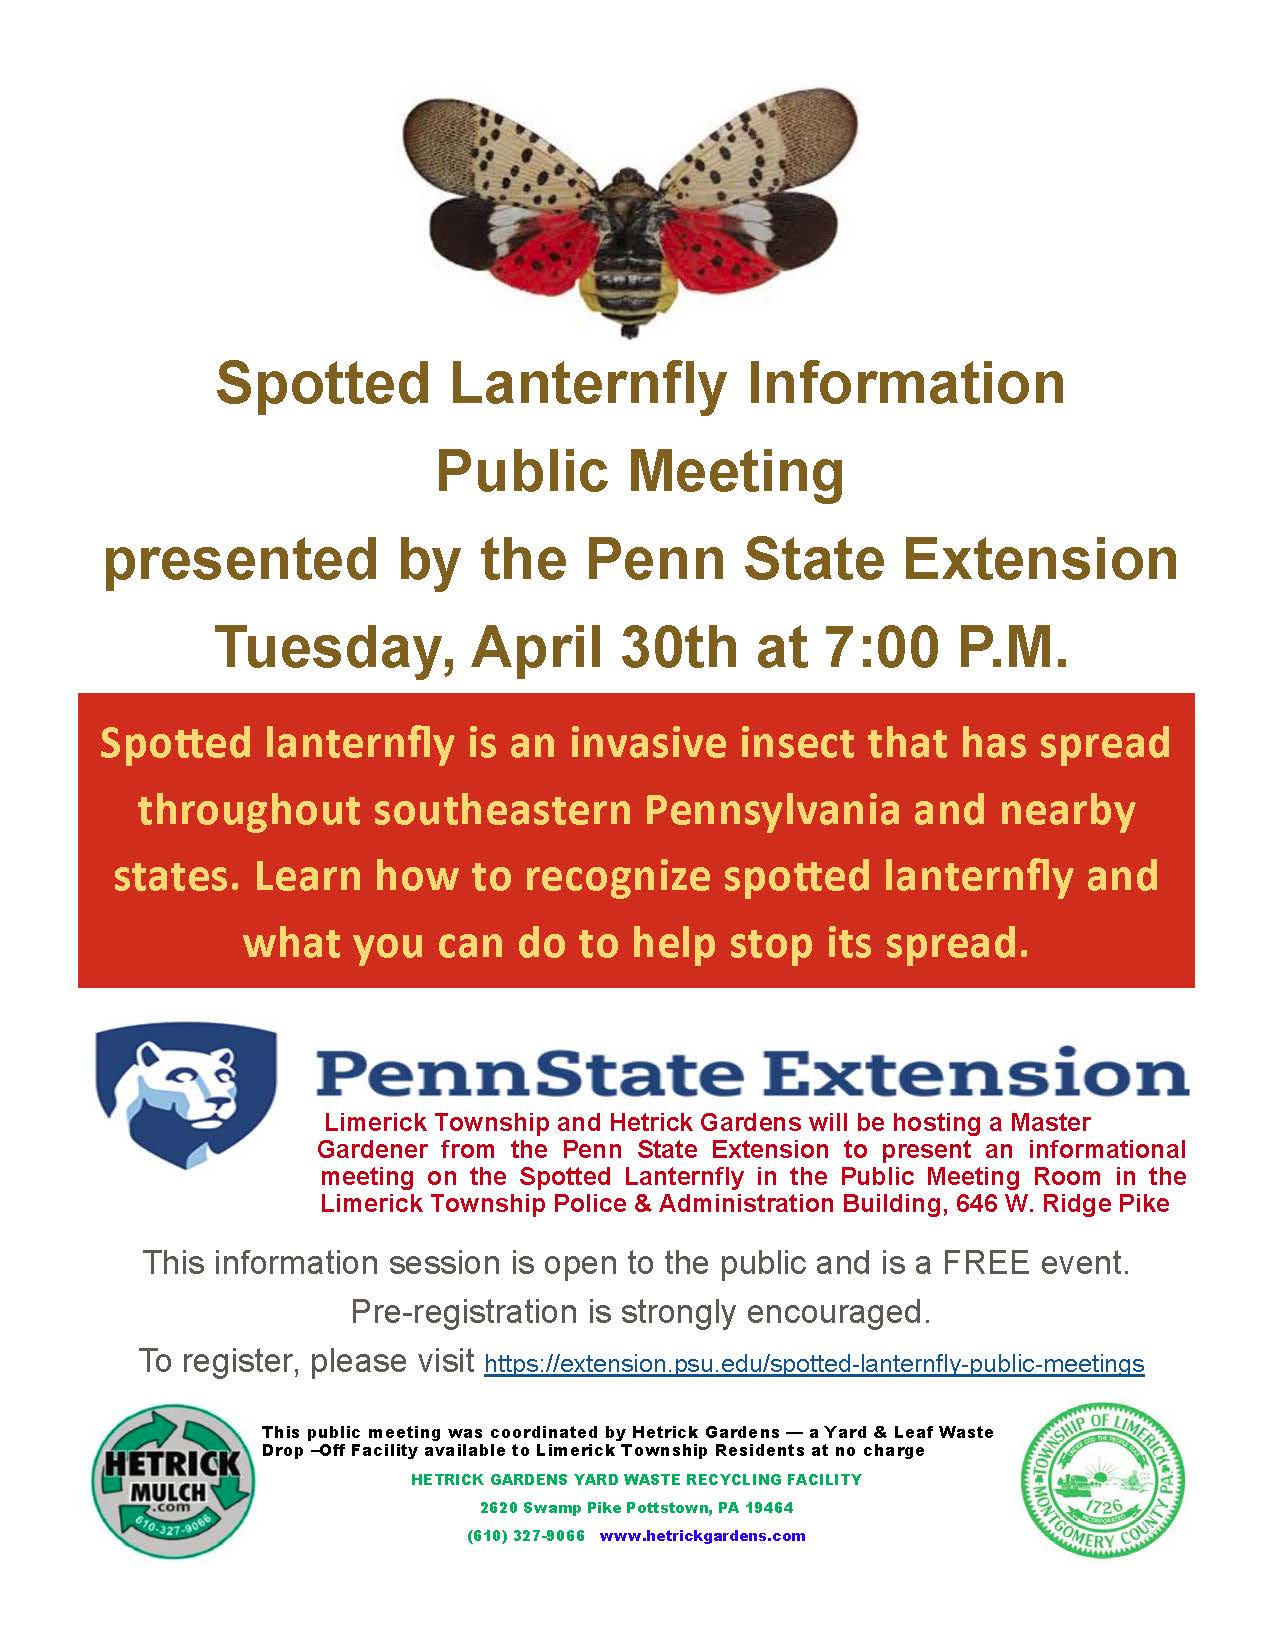 Spotted Lanternfly Meeting Flyer - April 30, 2019 at 7:00 PM